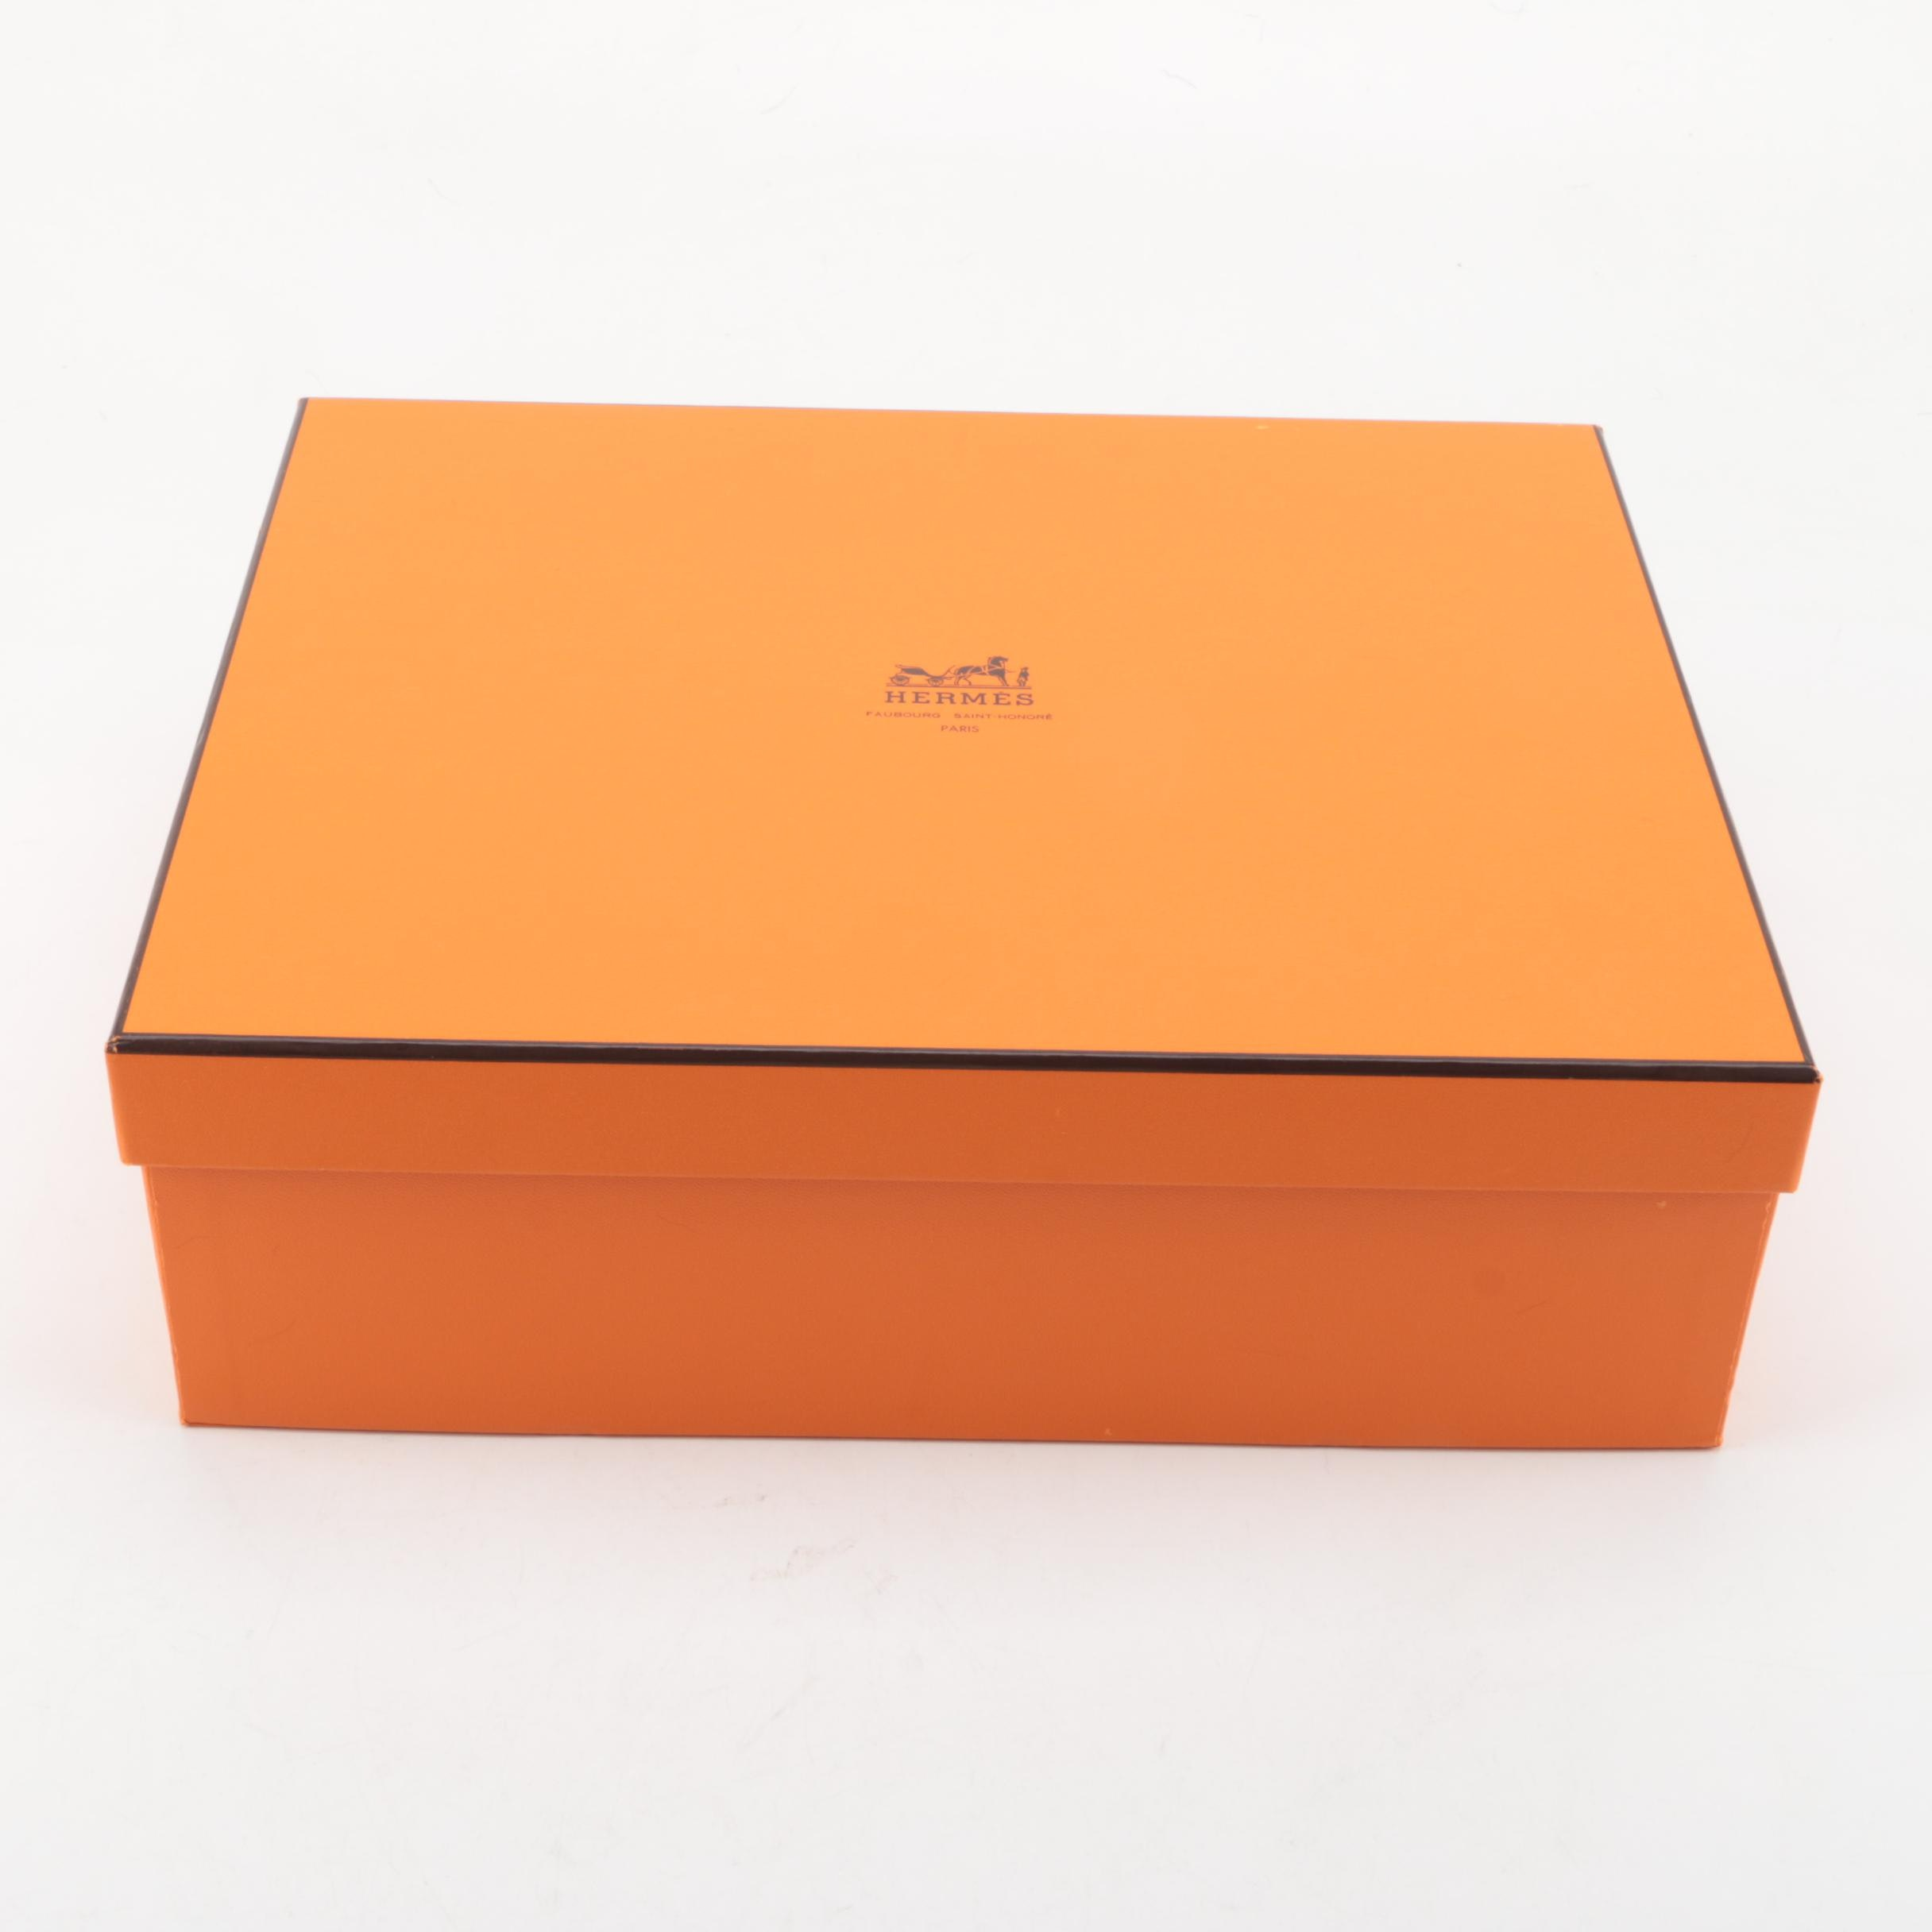 Hermès Paris Gift Box